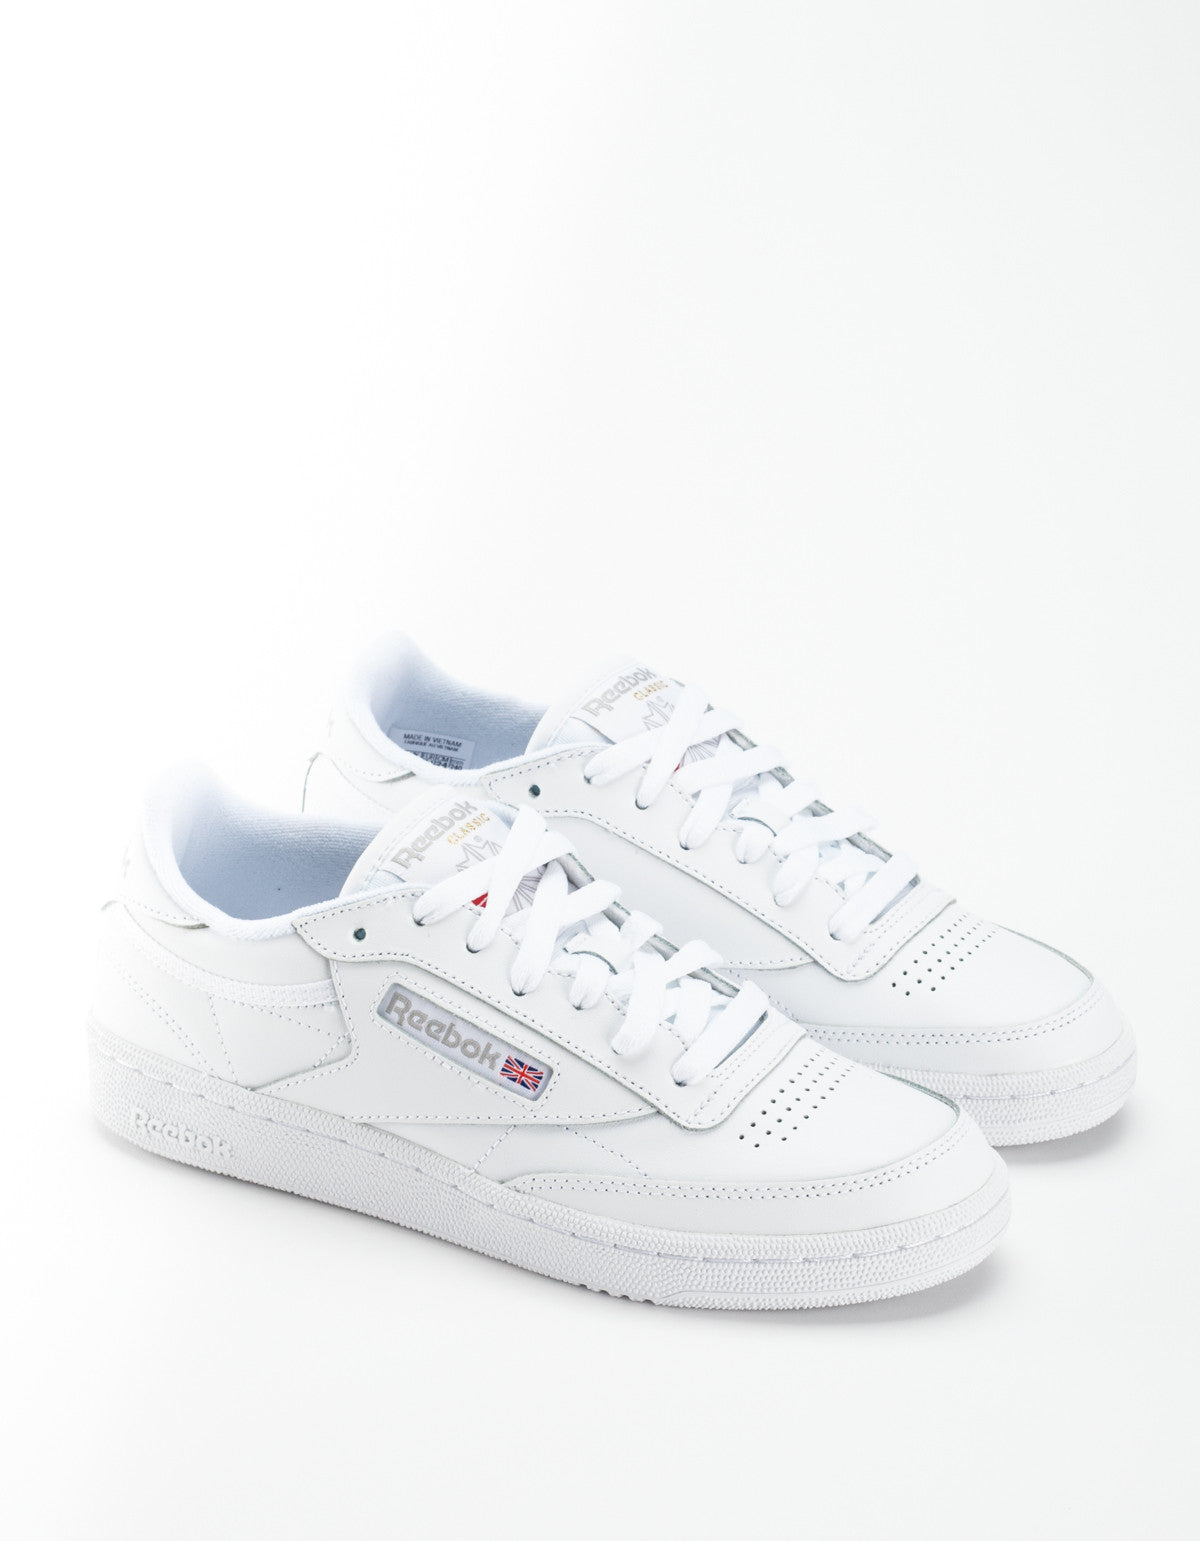 78cd83f3e54a37 Reebok Women s Club C 85 White Light Grey – Still Life